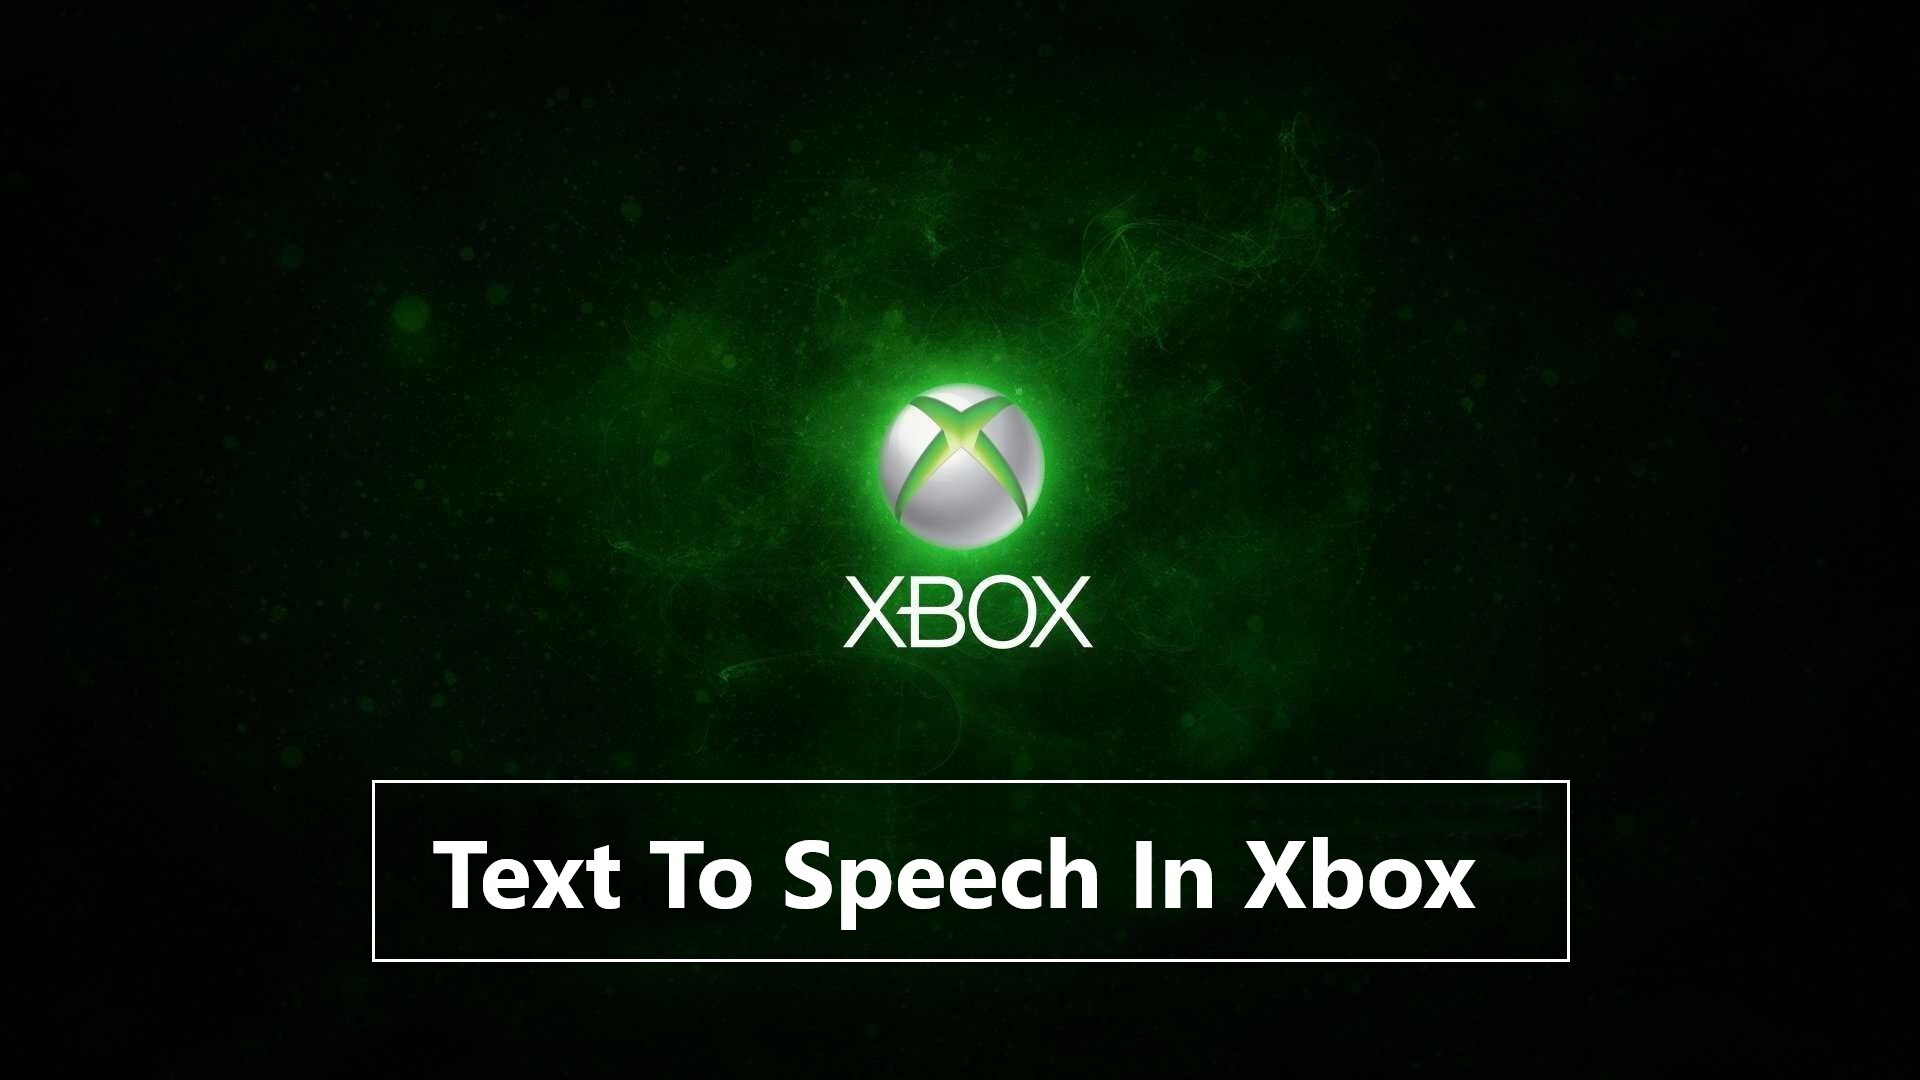 Text To Speech In Xbox